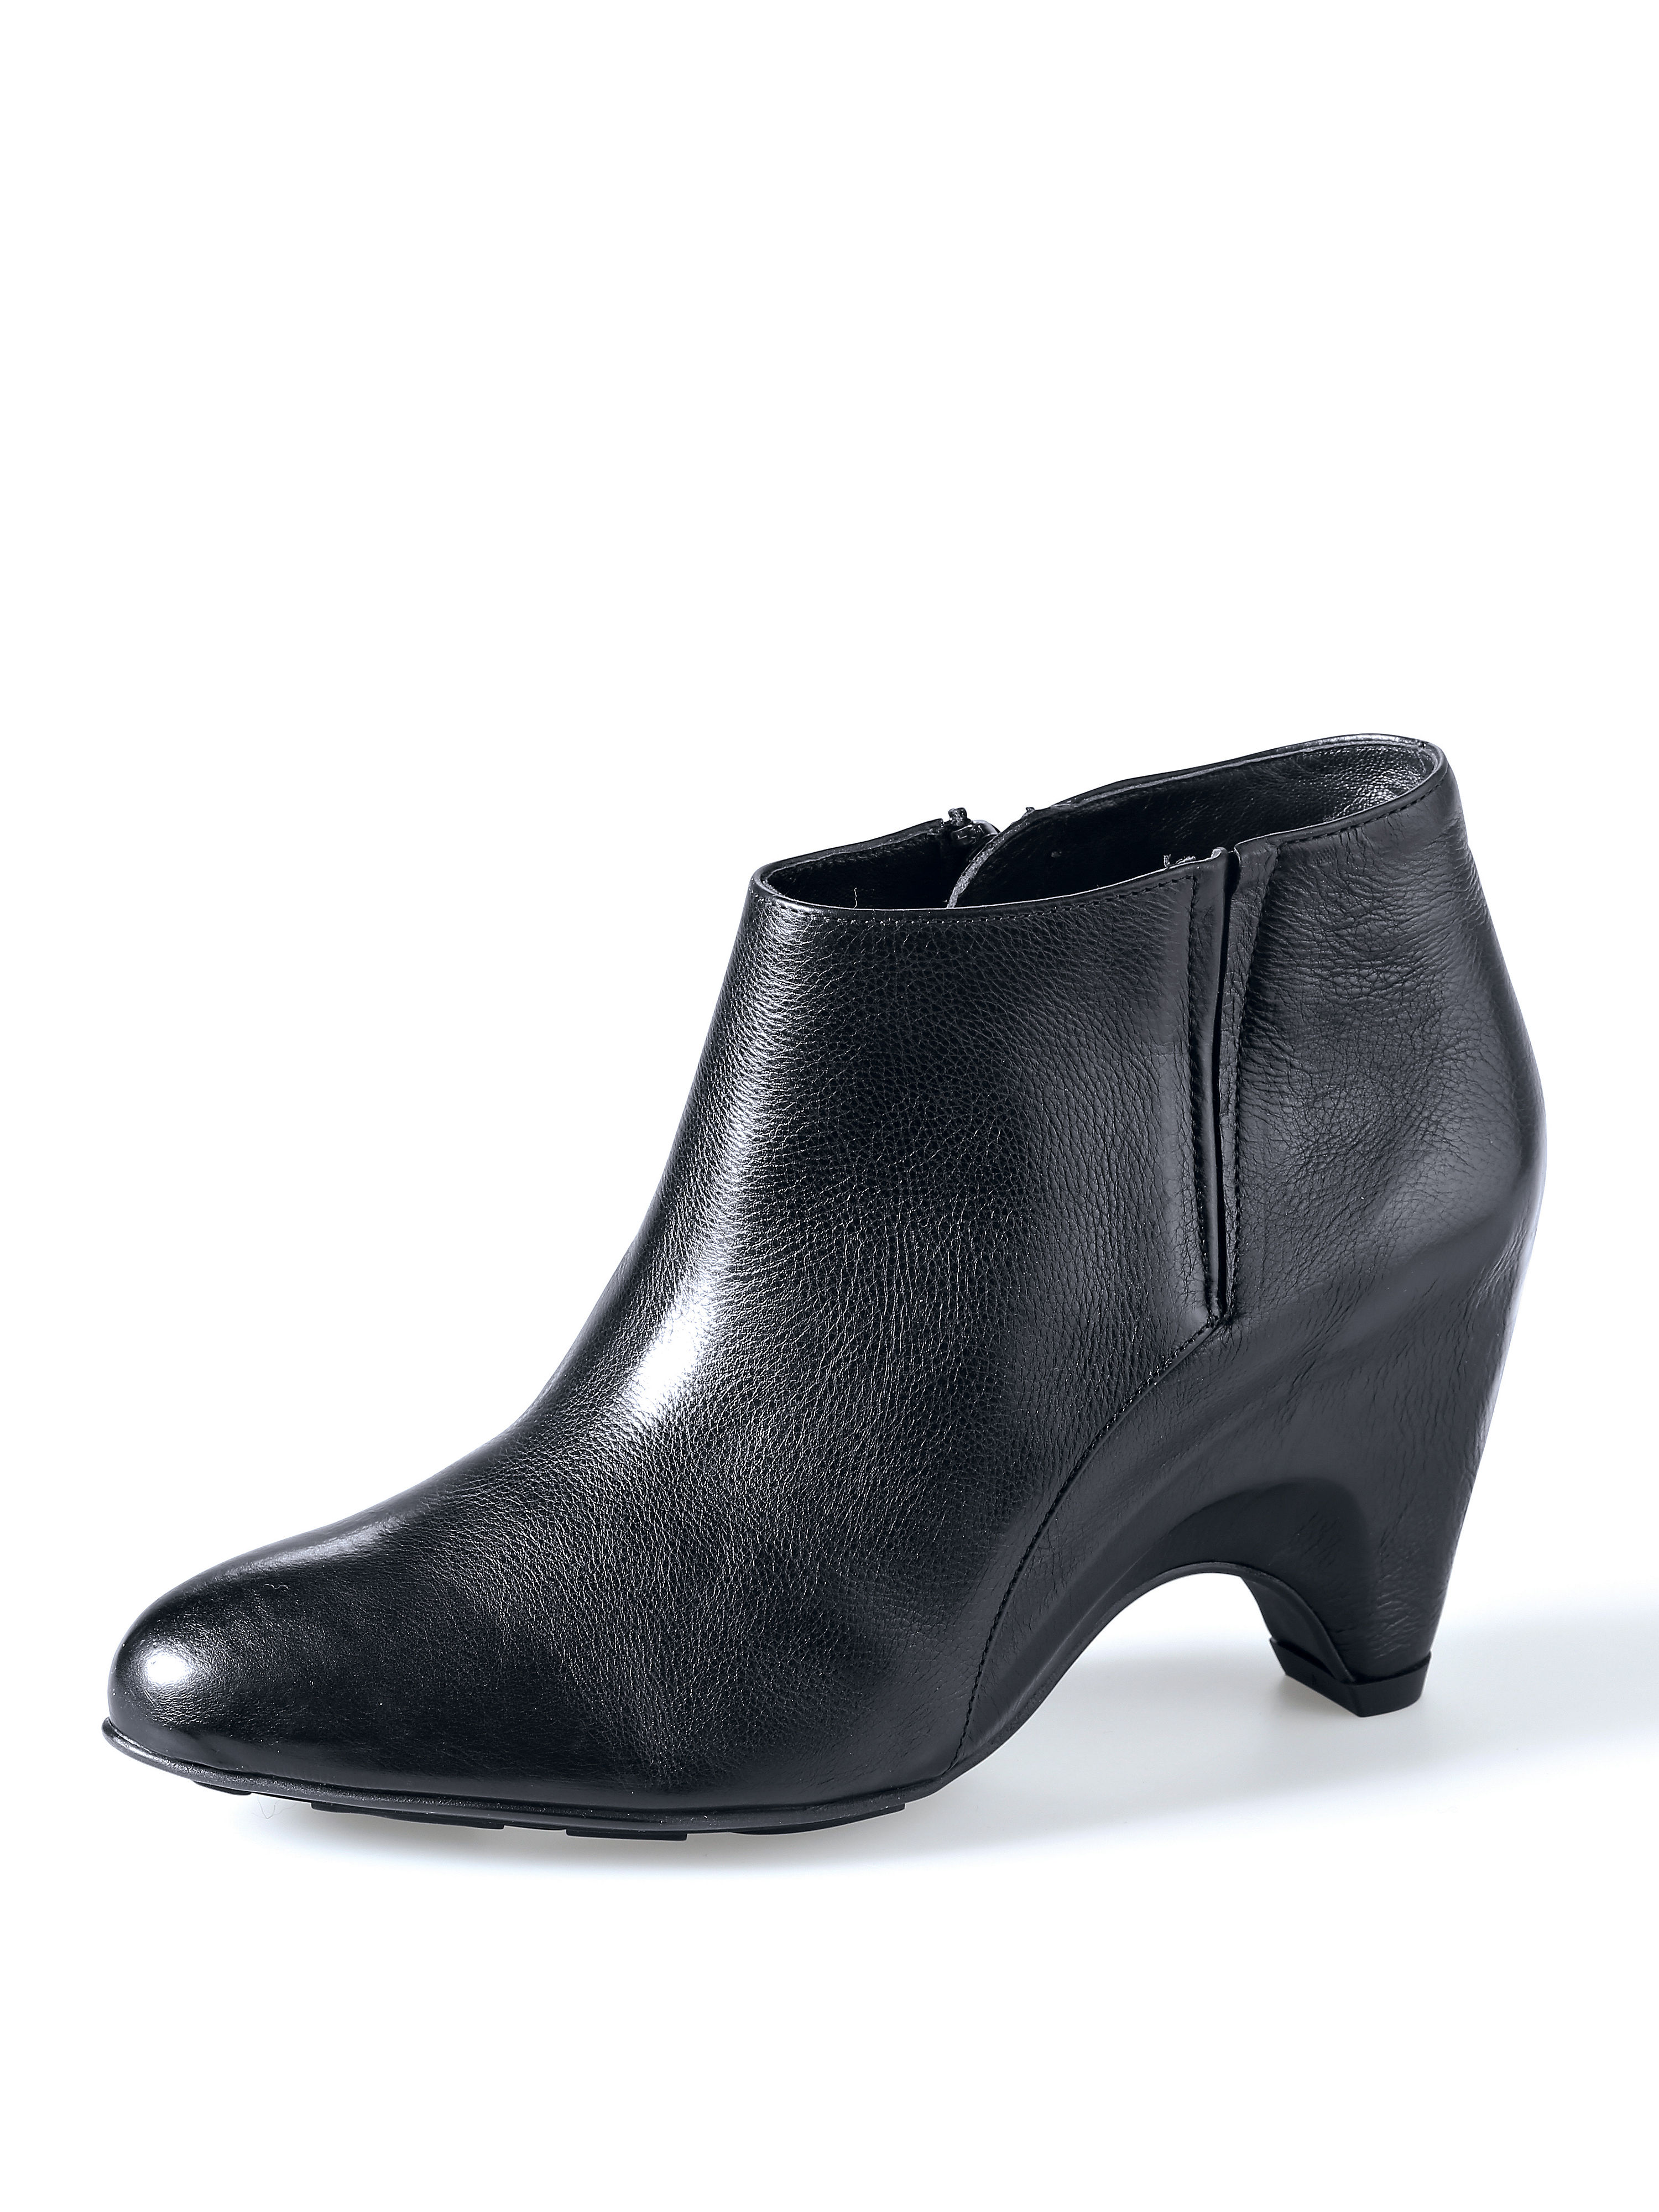 Ankle boots from the Butterflight collection Högl black